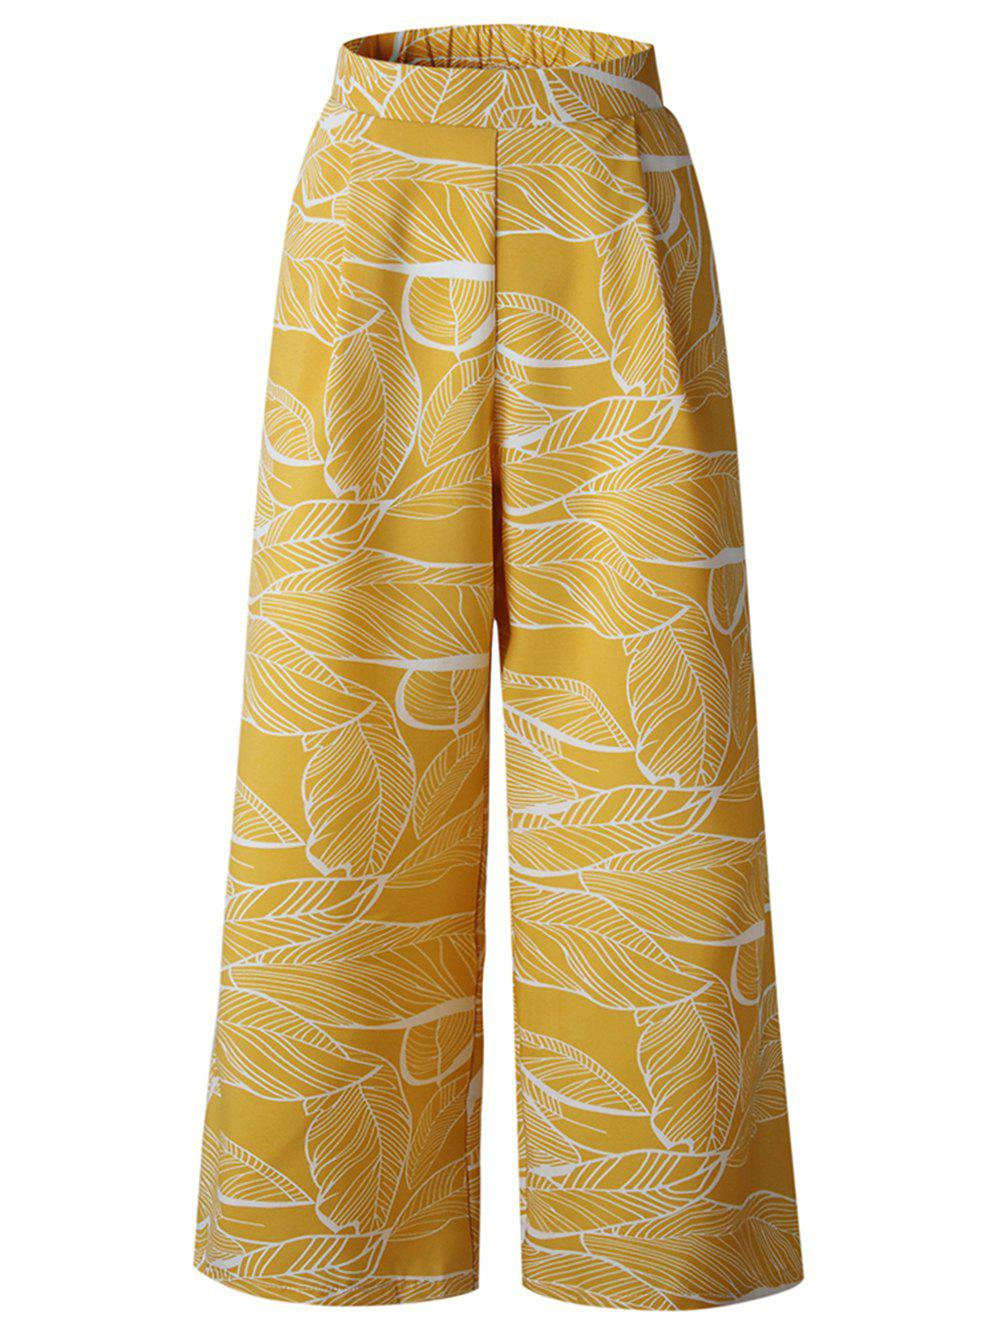 Fashion Womens Casual Floral Print High Waist Wide Leg Long Palazzo Pants with Pockets